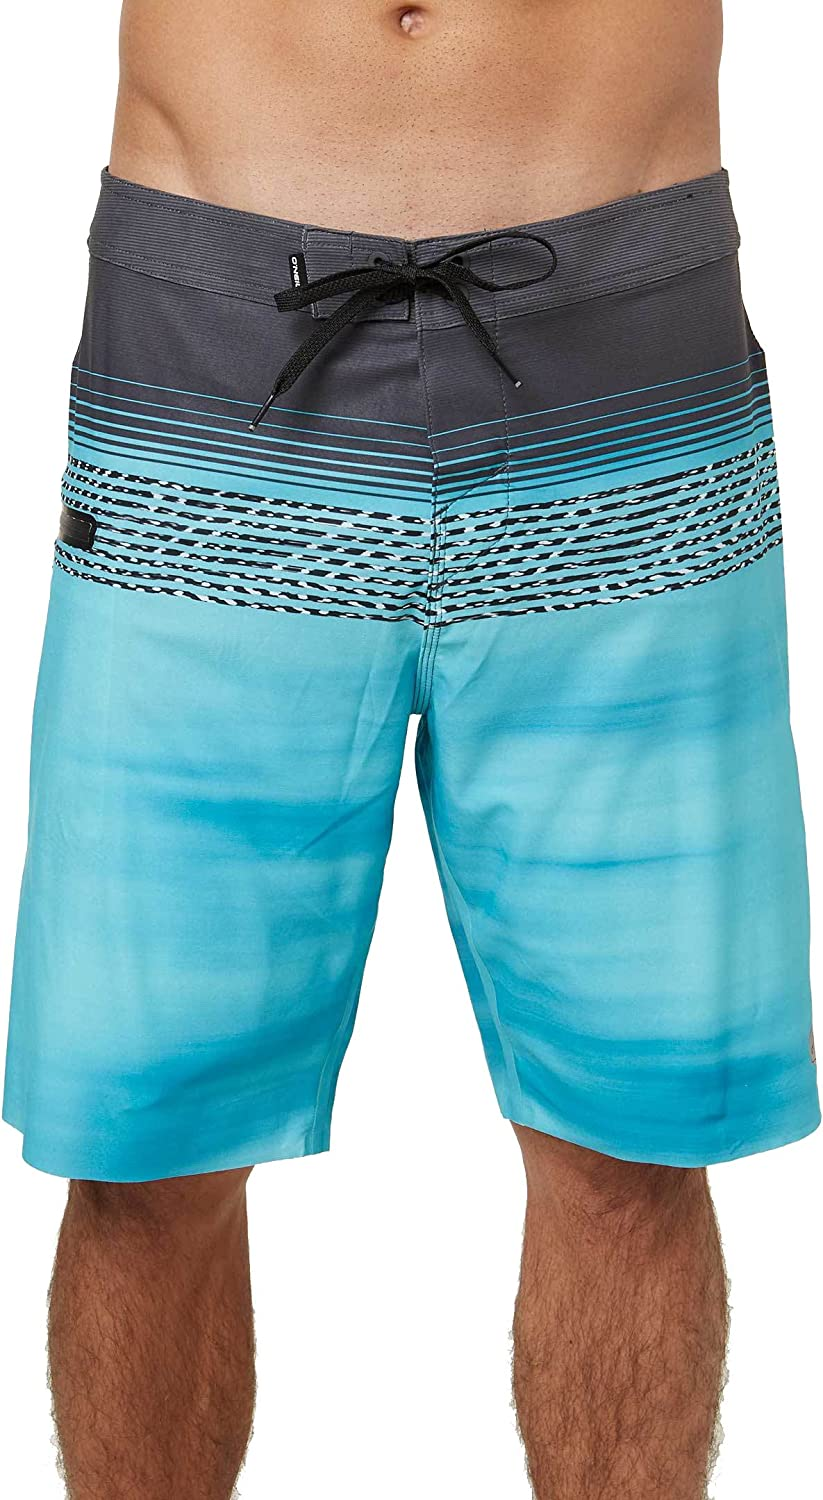 O'NEILL mens Trunk Style